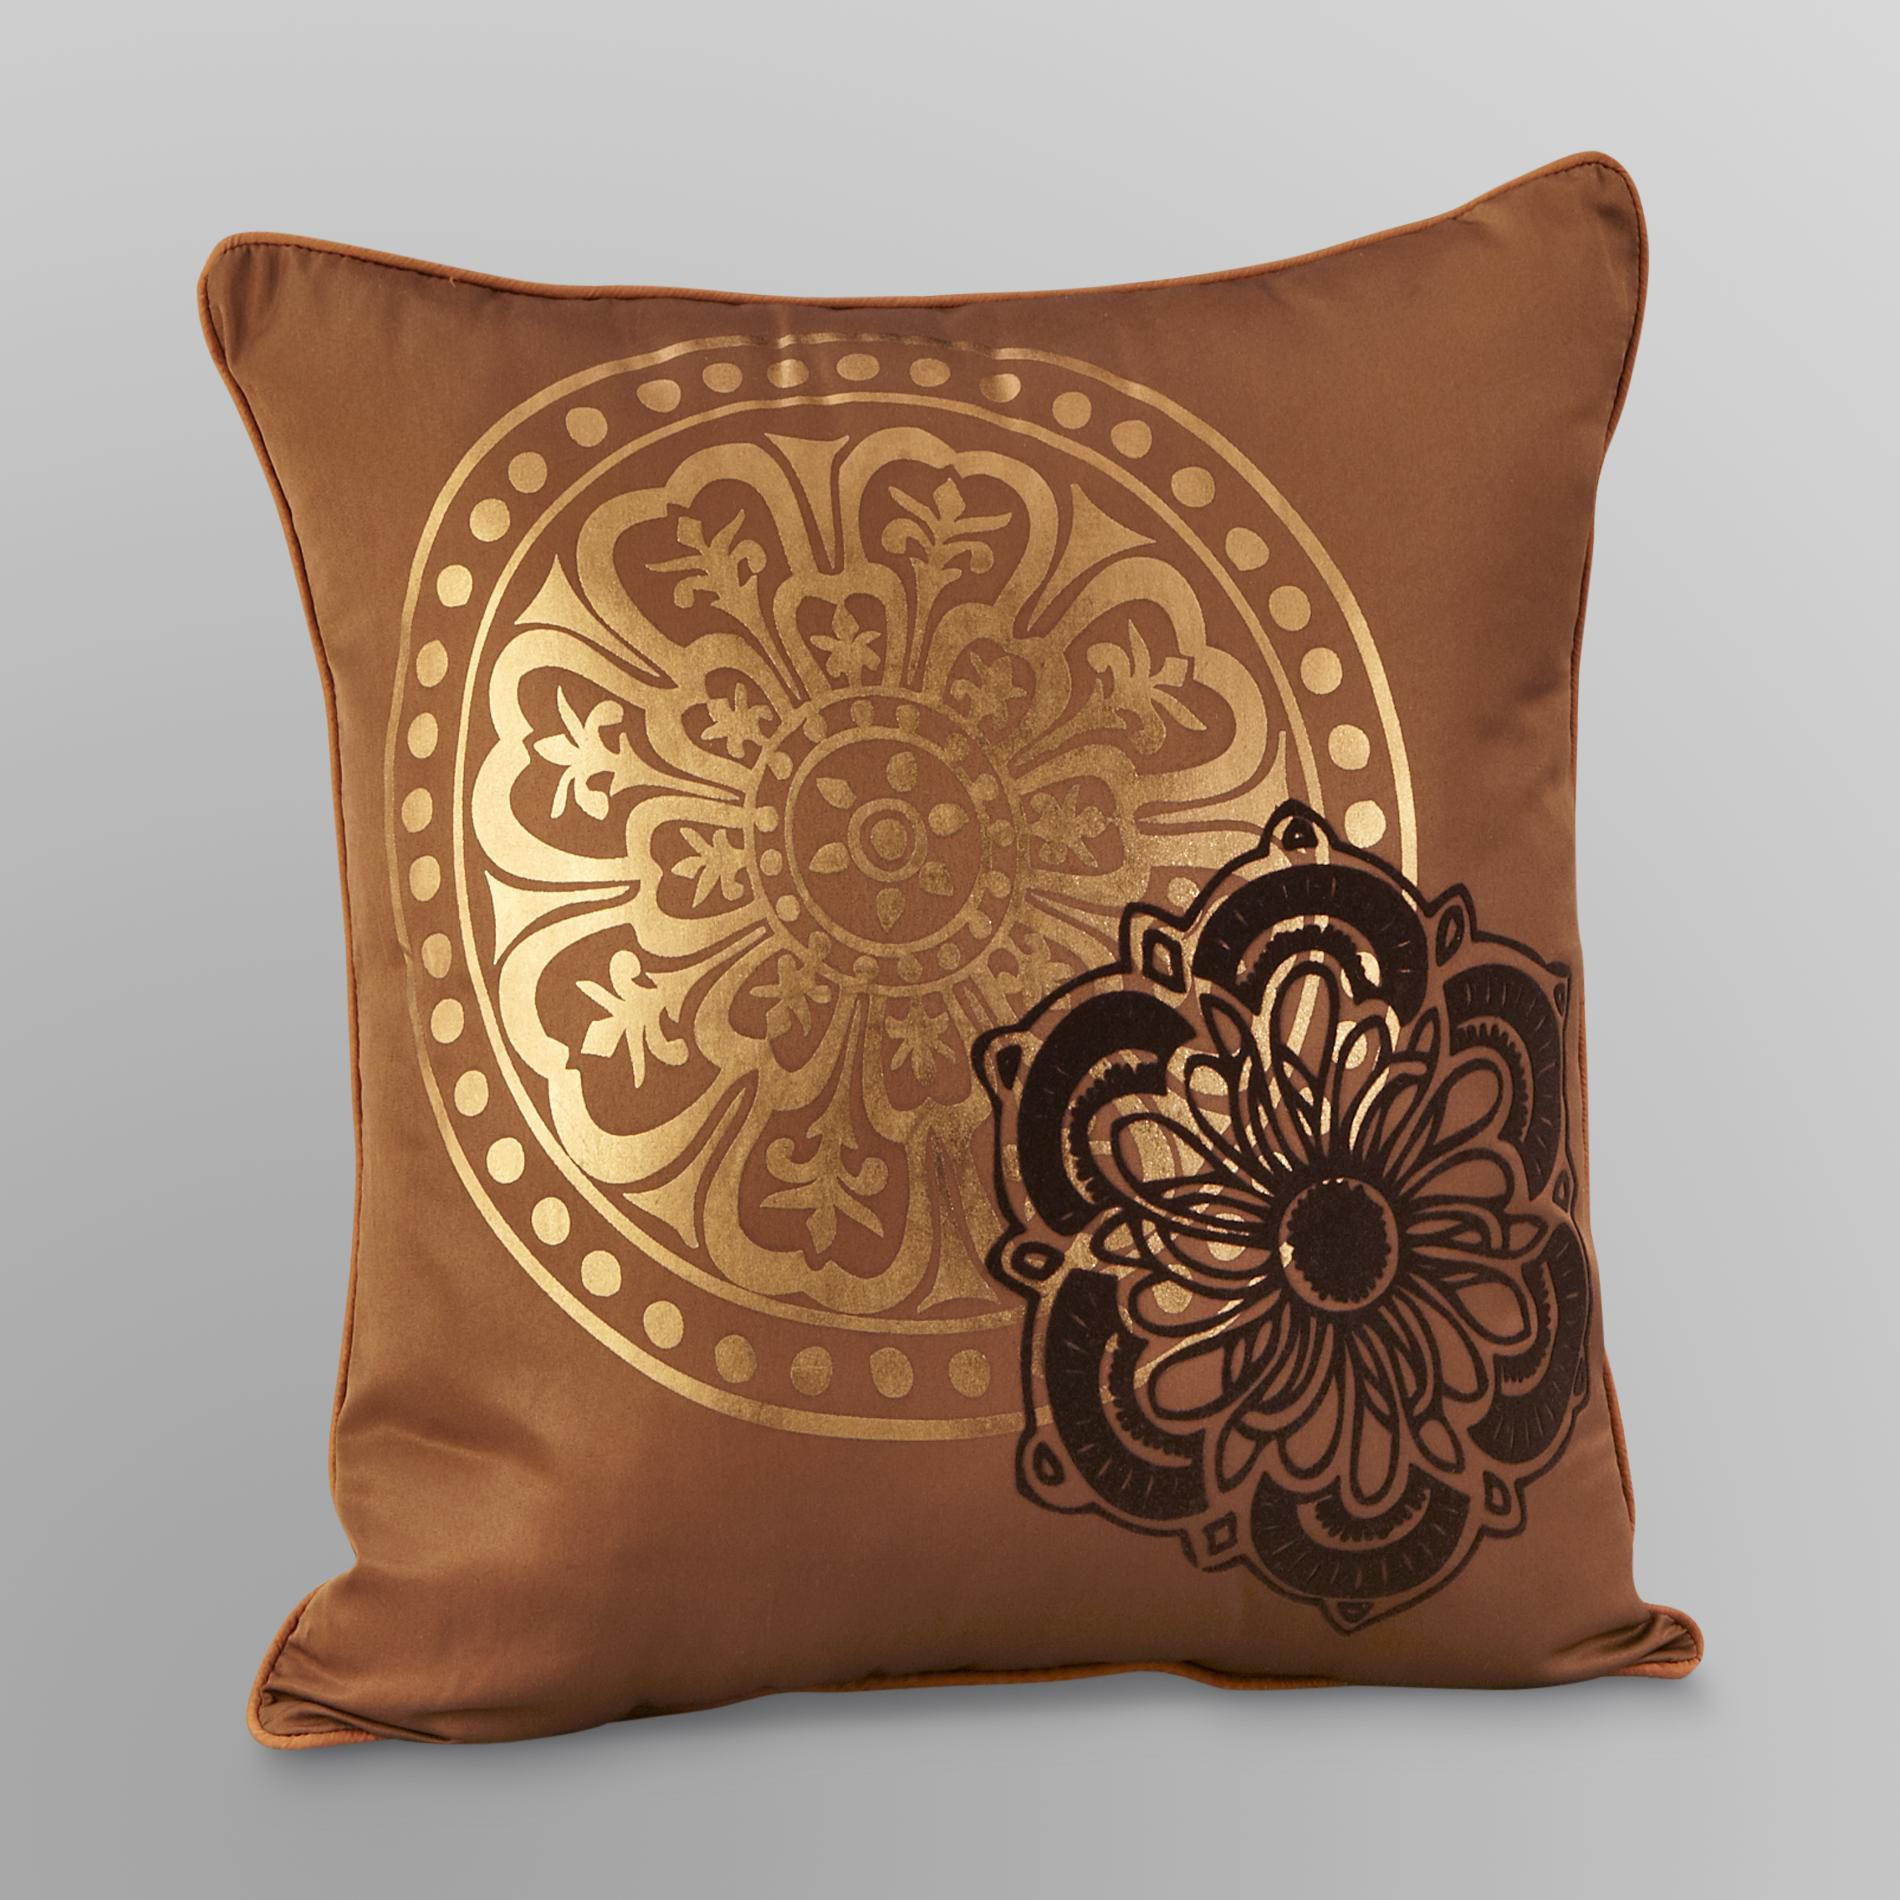 Marrakesh Medallion Decorative Pillow